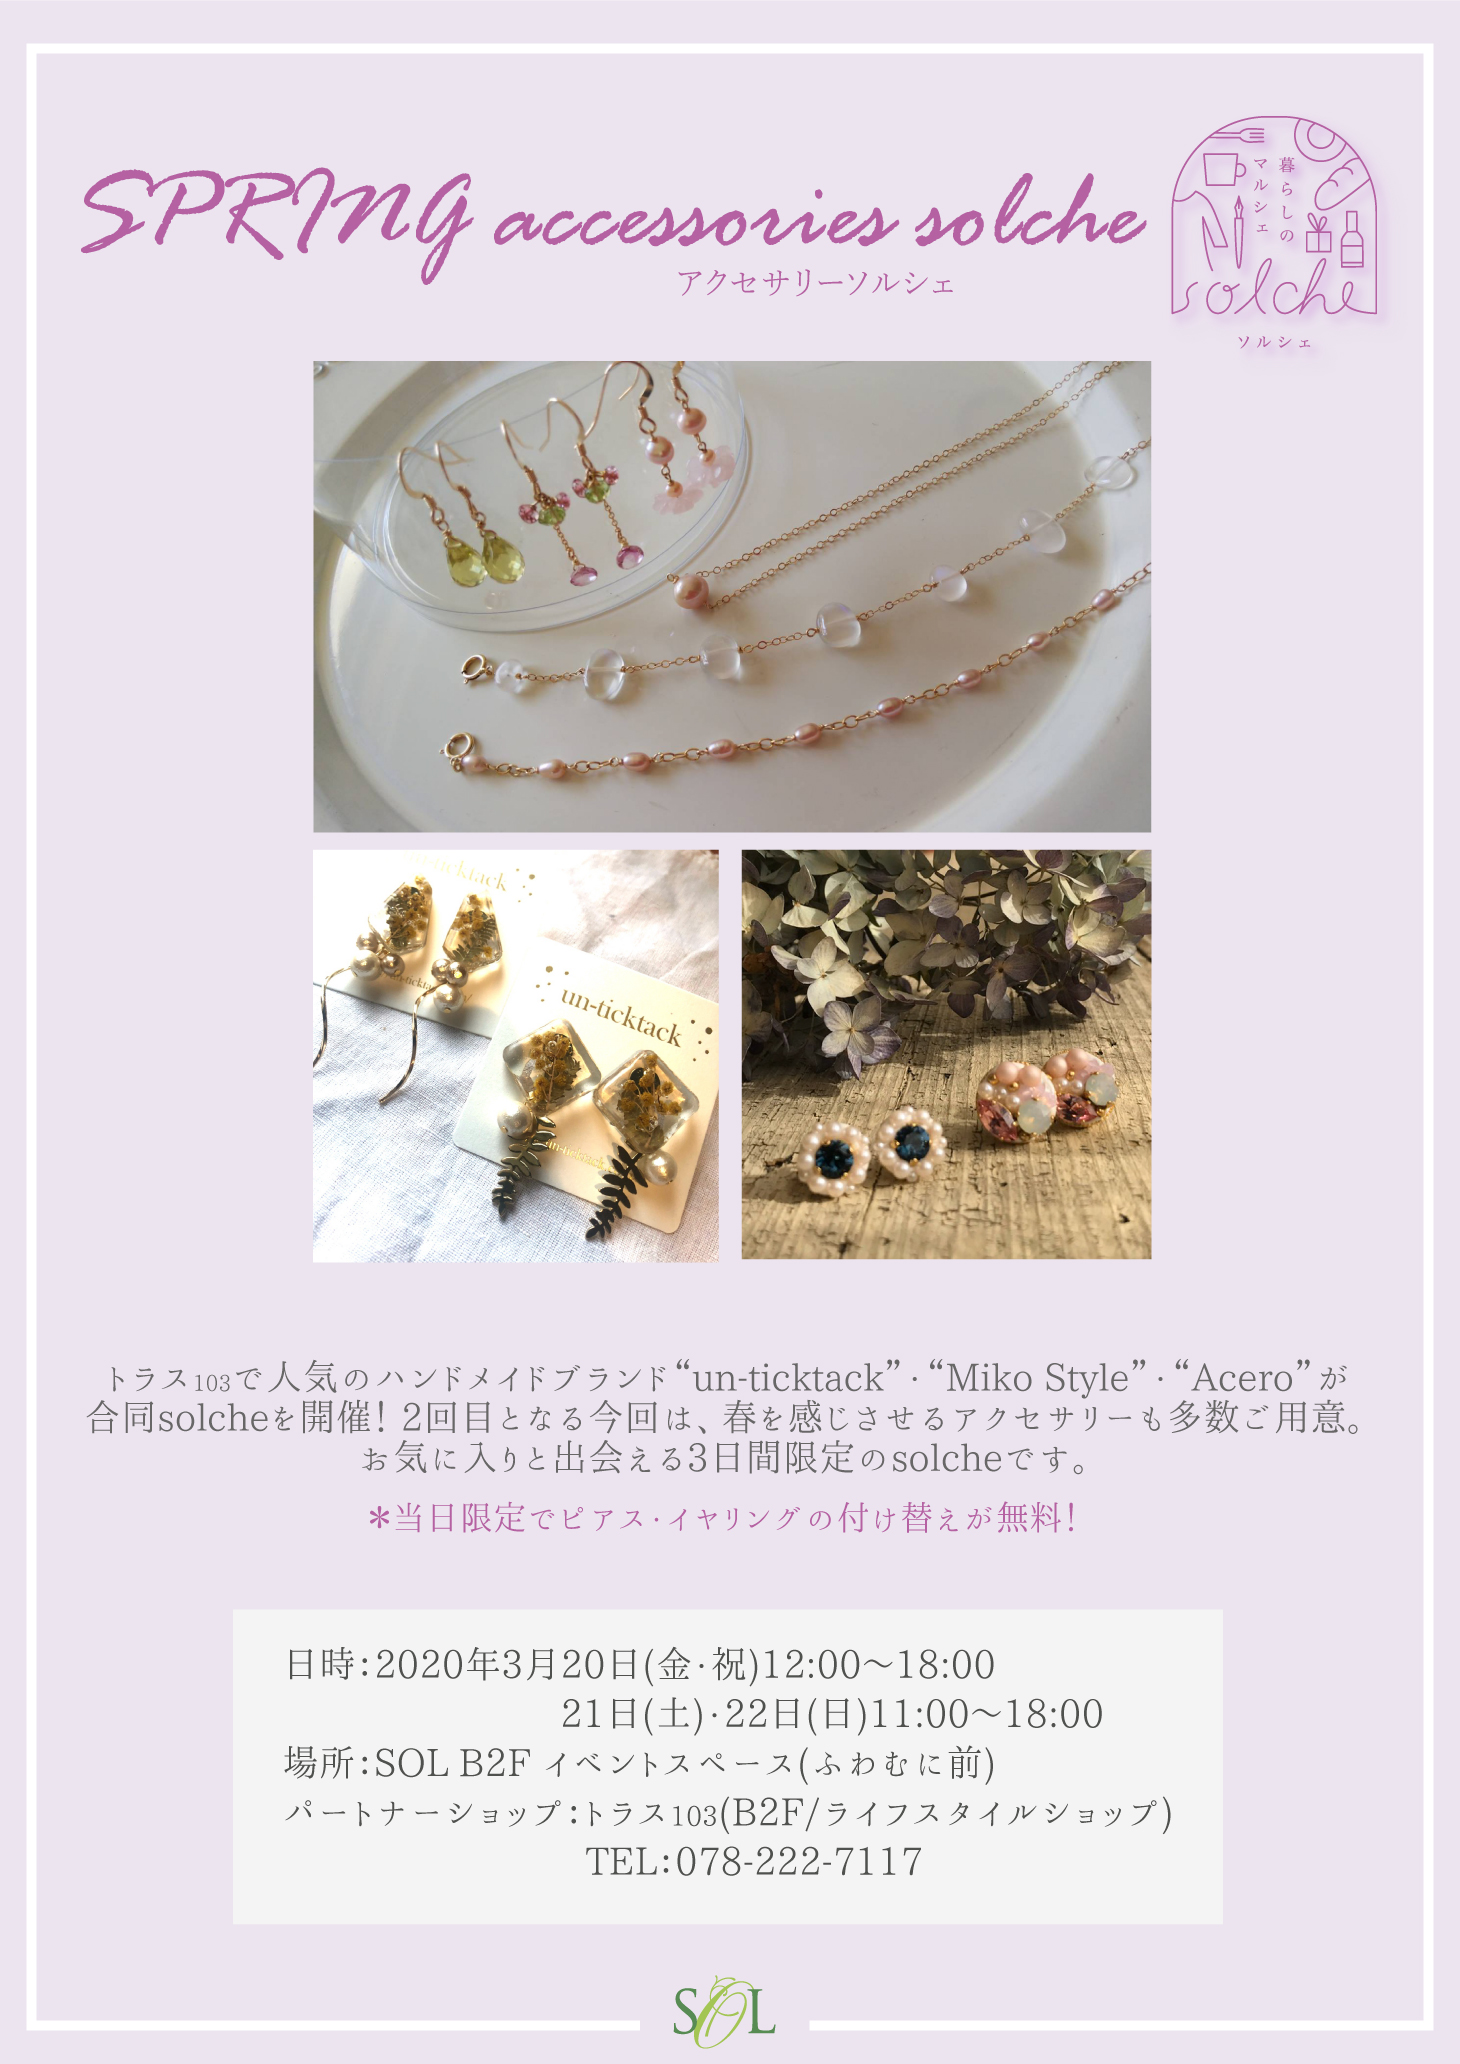 3/20(金・祝)~22(日)「SPRING accessories solche」開催!